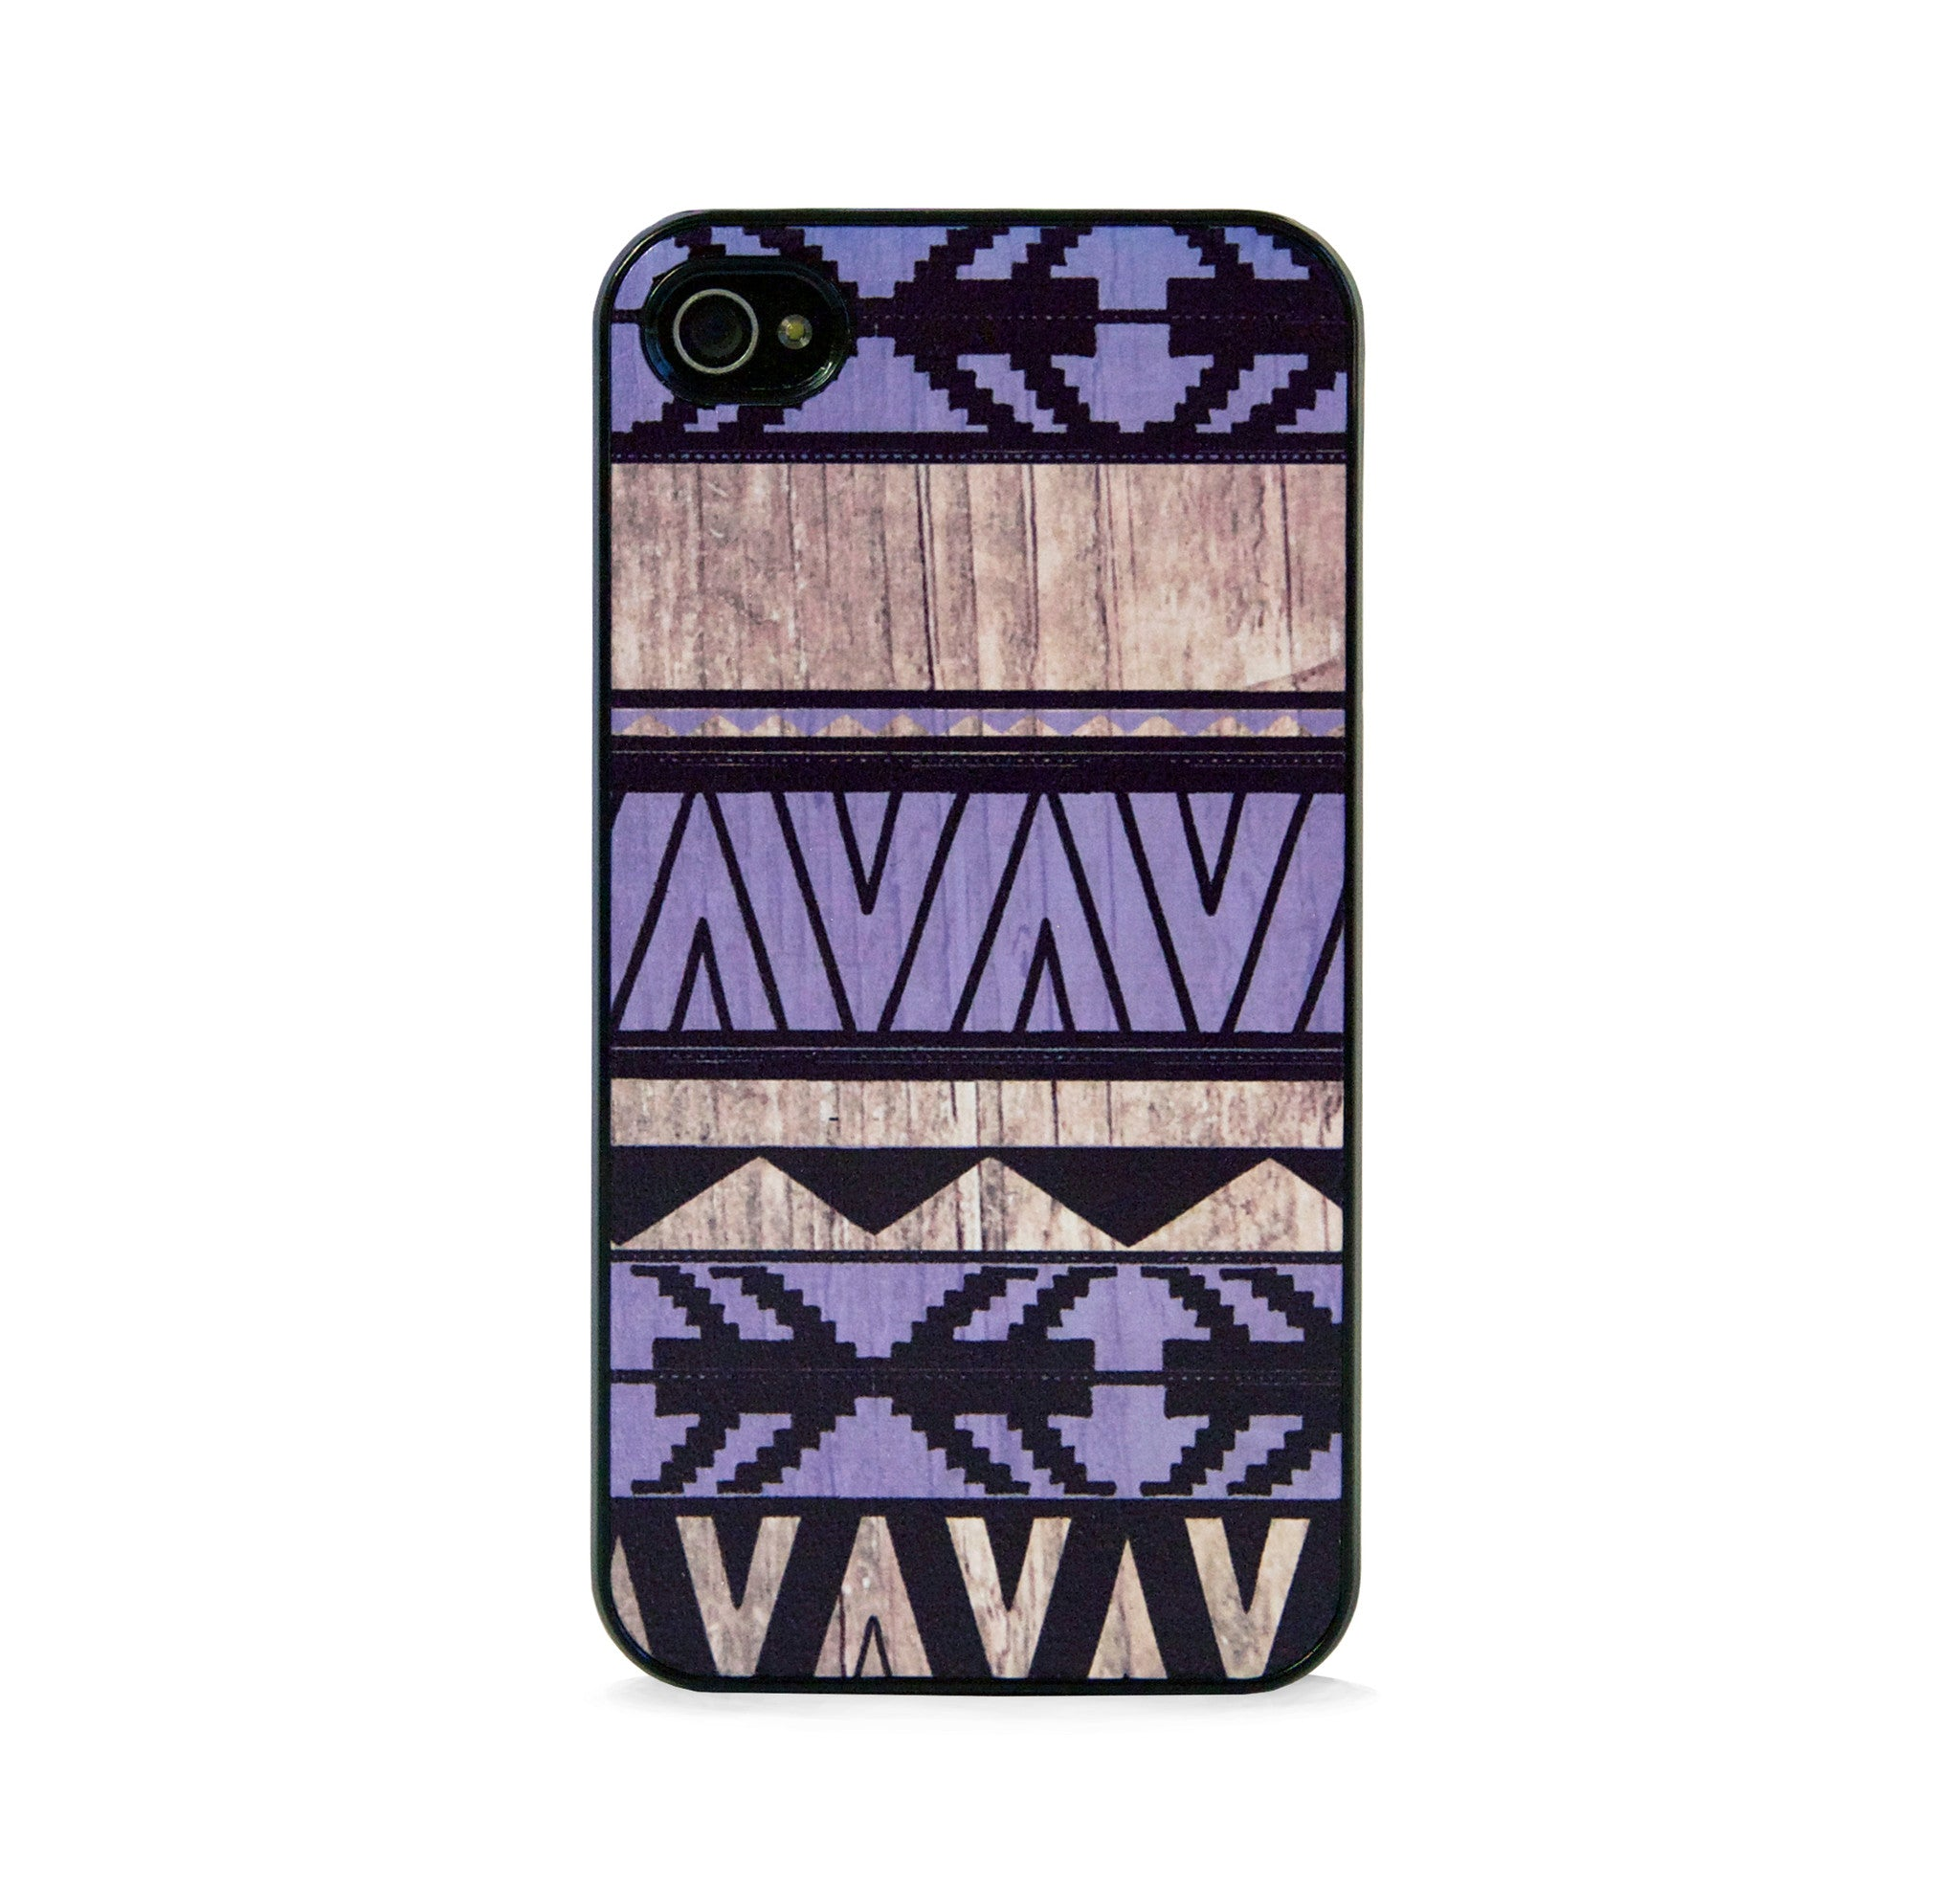 AZTEC GEO PPL WOOD FOR IPHONE 4/4S